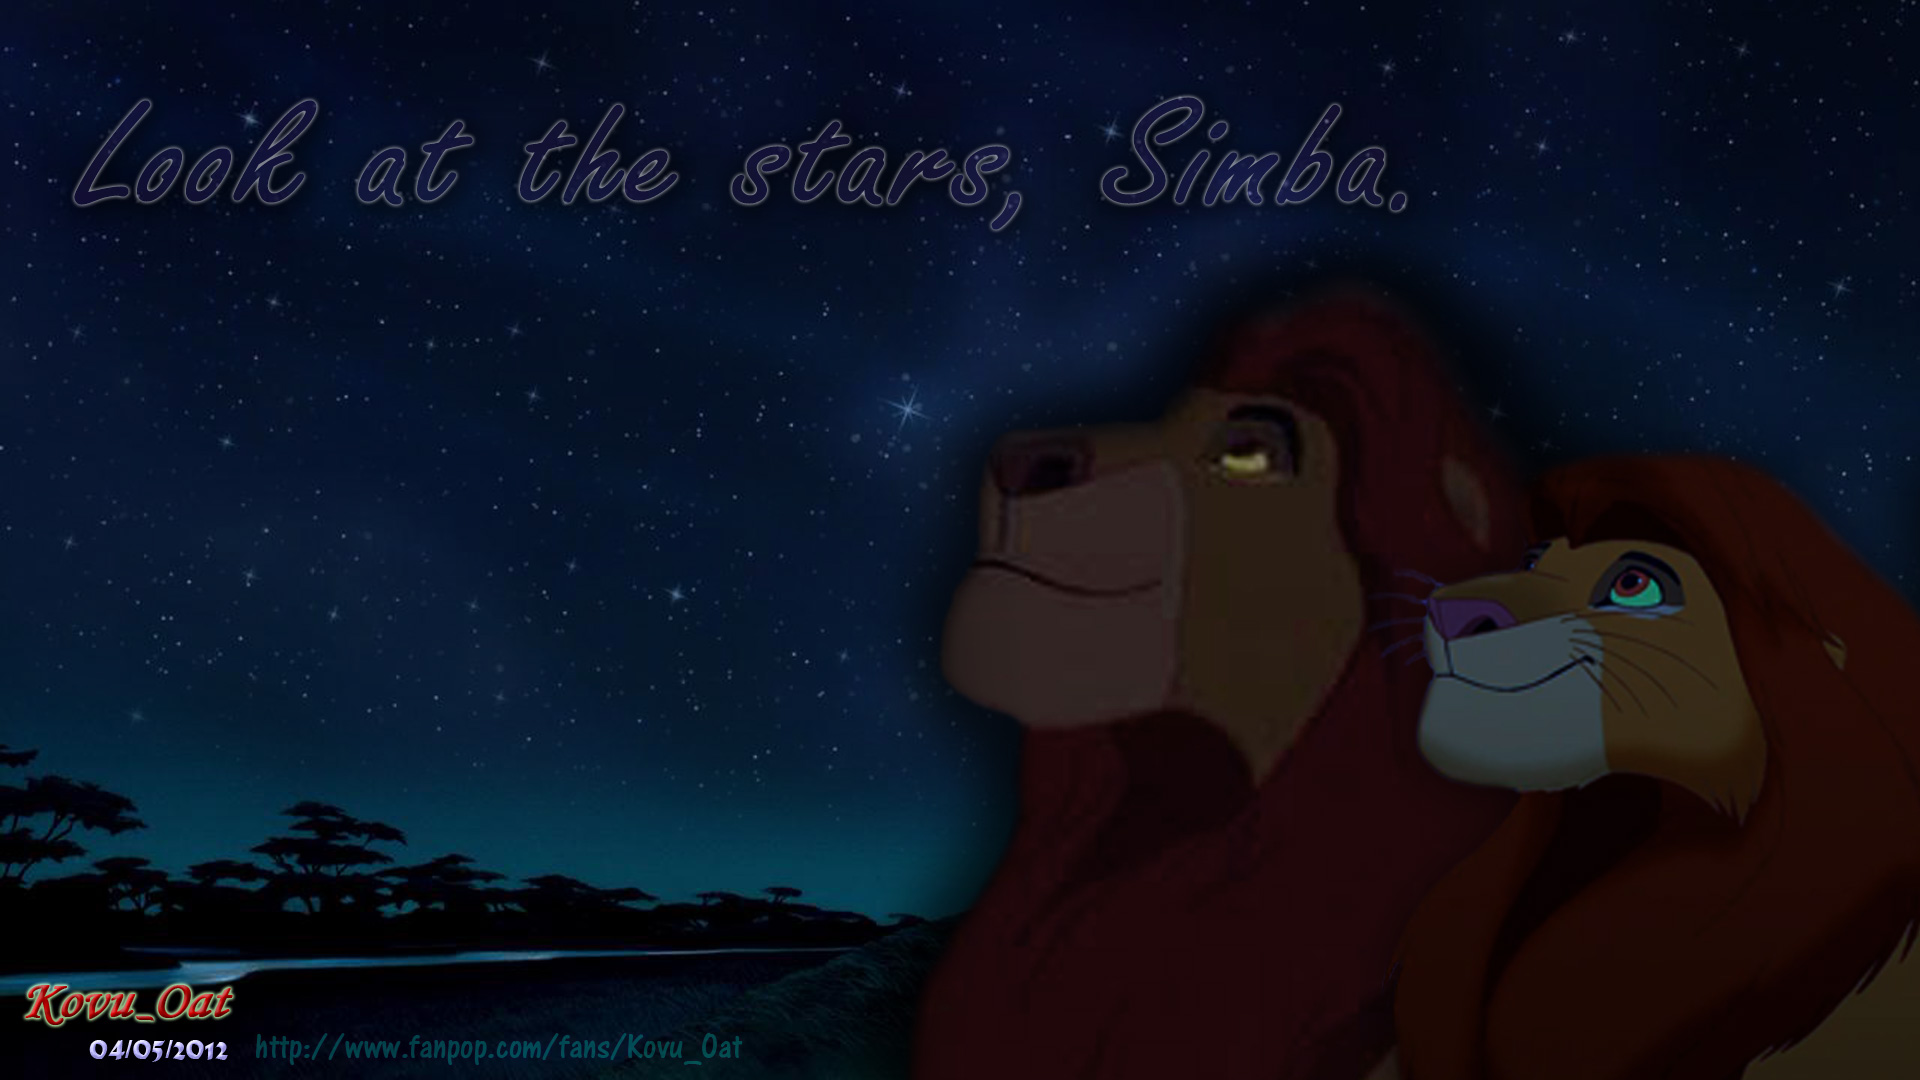 Simba Images The Lion King Mufasa Simba Love Night Sky Star